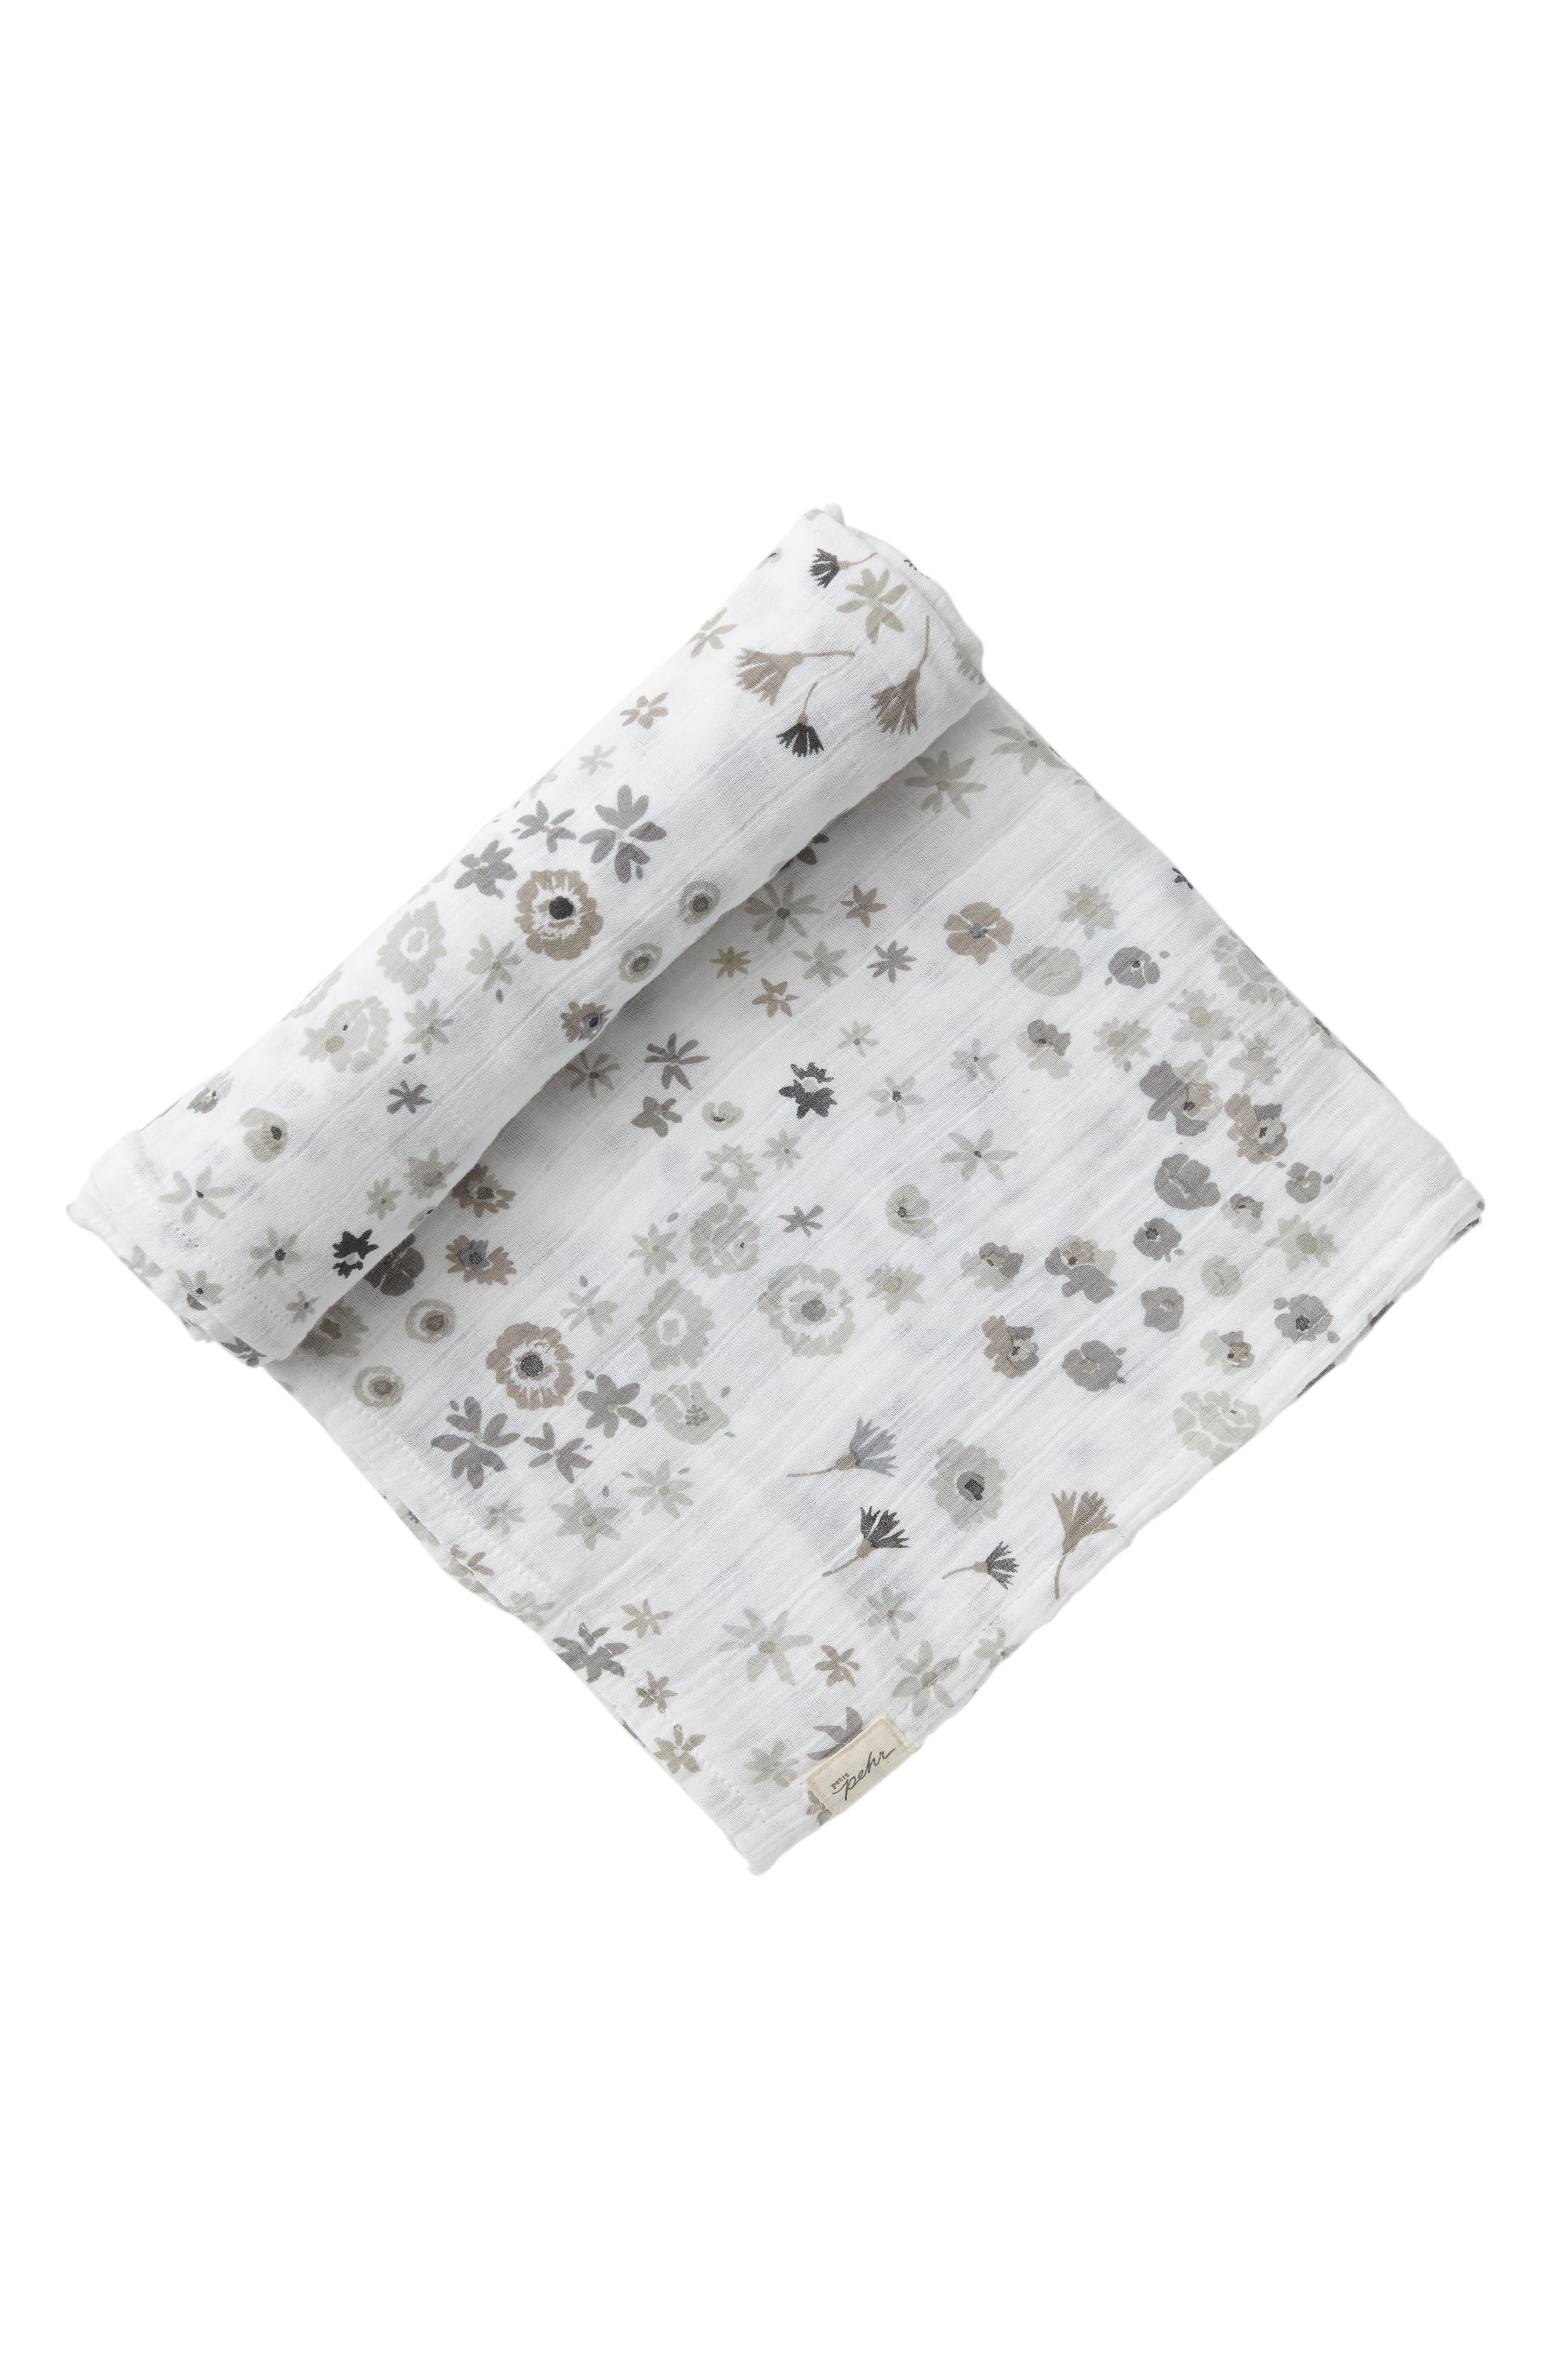 Petit Pehr Monochrome Meadow Swaddle Blanket